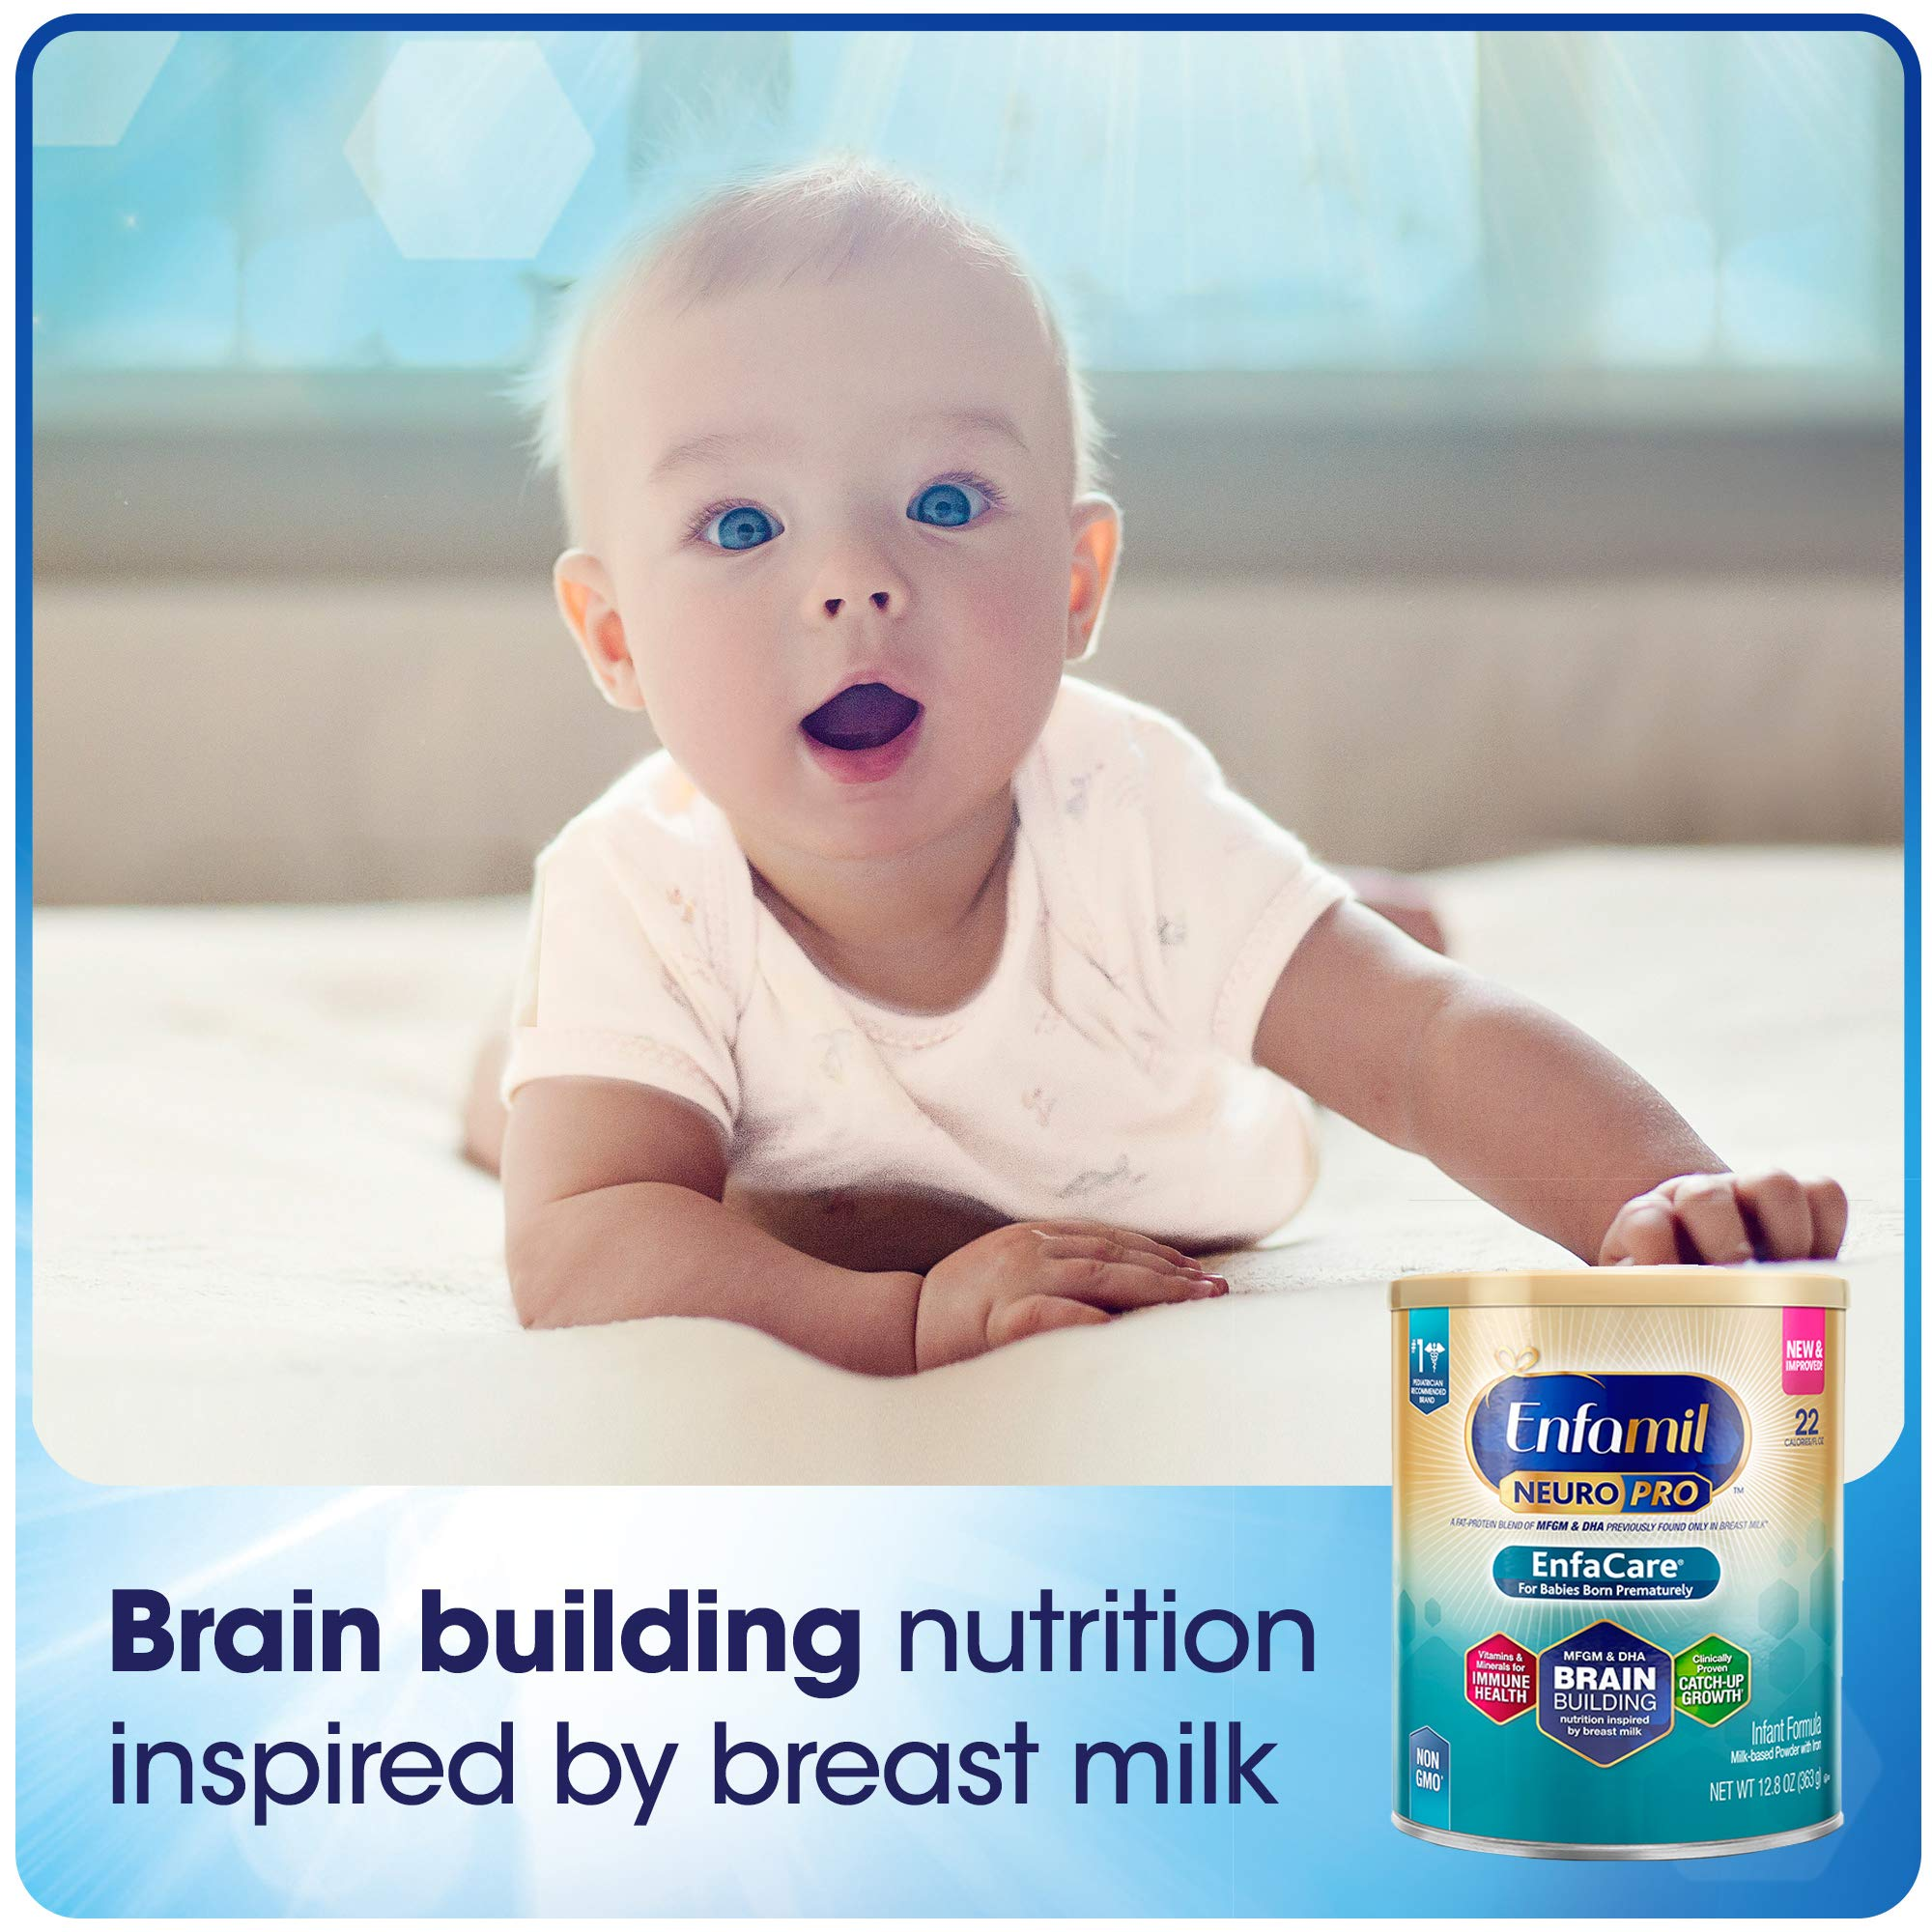 Enfamil NeuroPro EnfaCare Infant Formula - Brain Building Nutrition with Clinically Proven Growth Benefits for Premature Babies - Powder Can, 12.8 oz (Pack of 6) by Enfamil (Image #7)